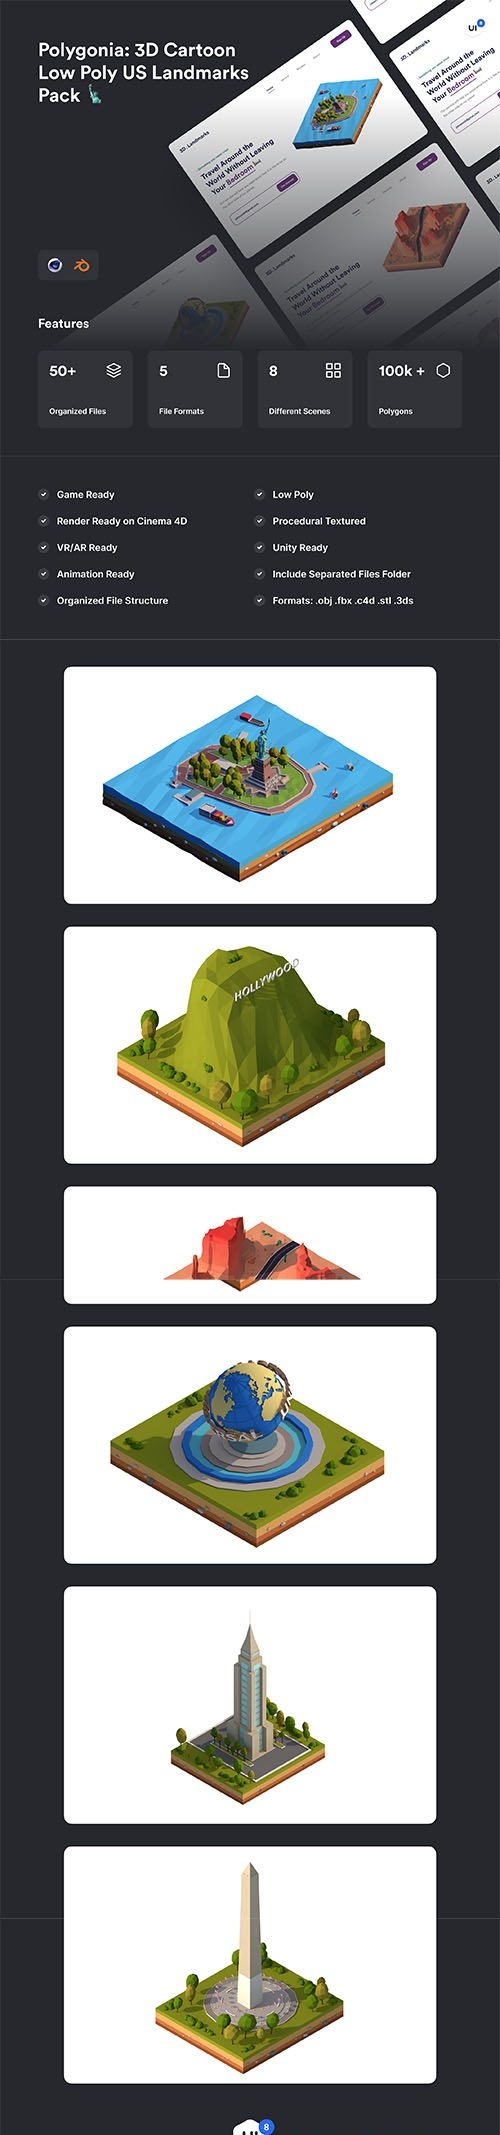 Polygonia: Low Poly US Landmarks Pack